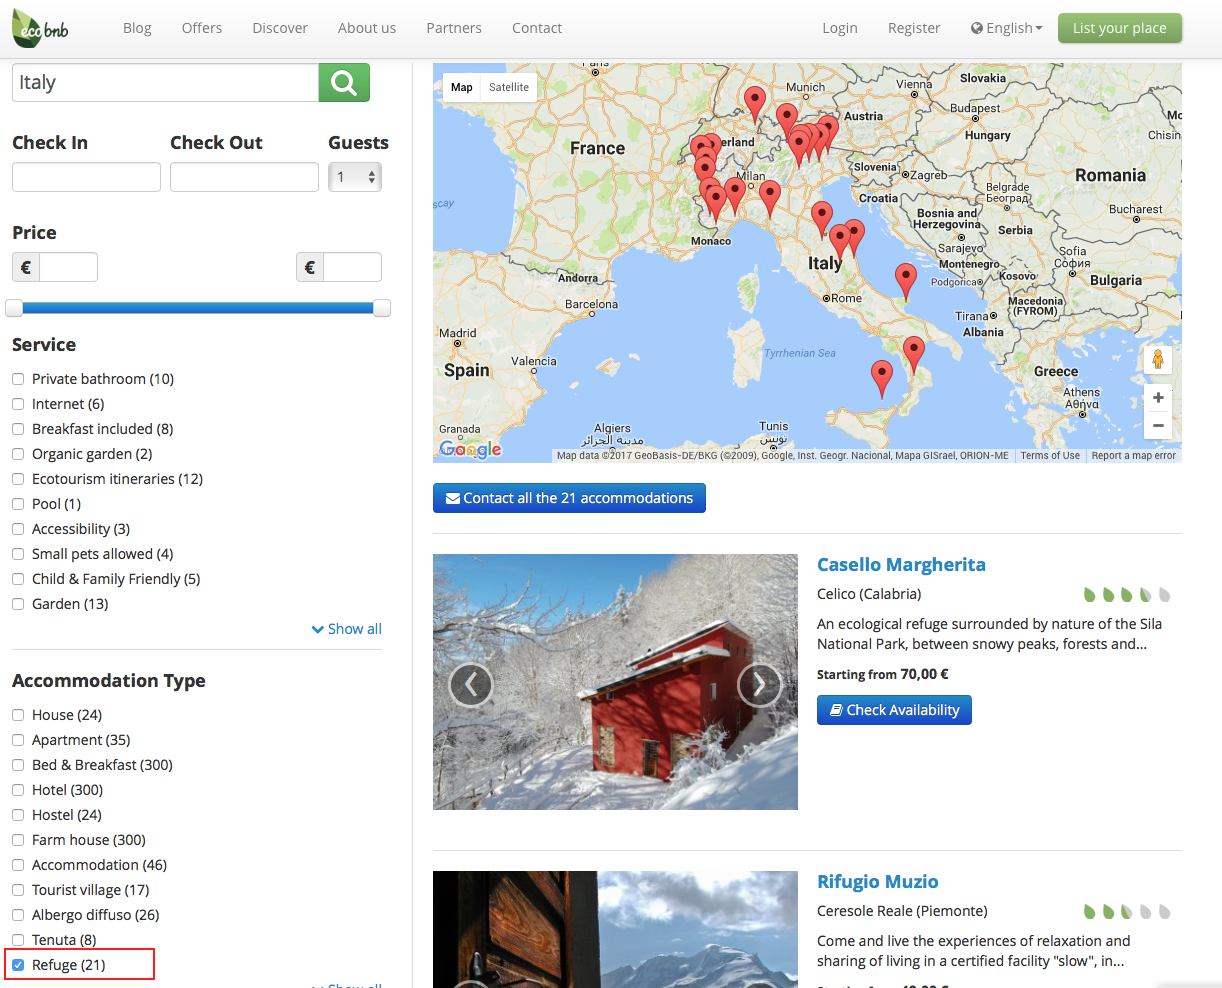 With Ecobnb you can find eco-friendly shelters all around the world